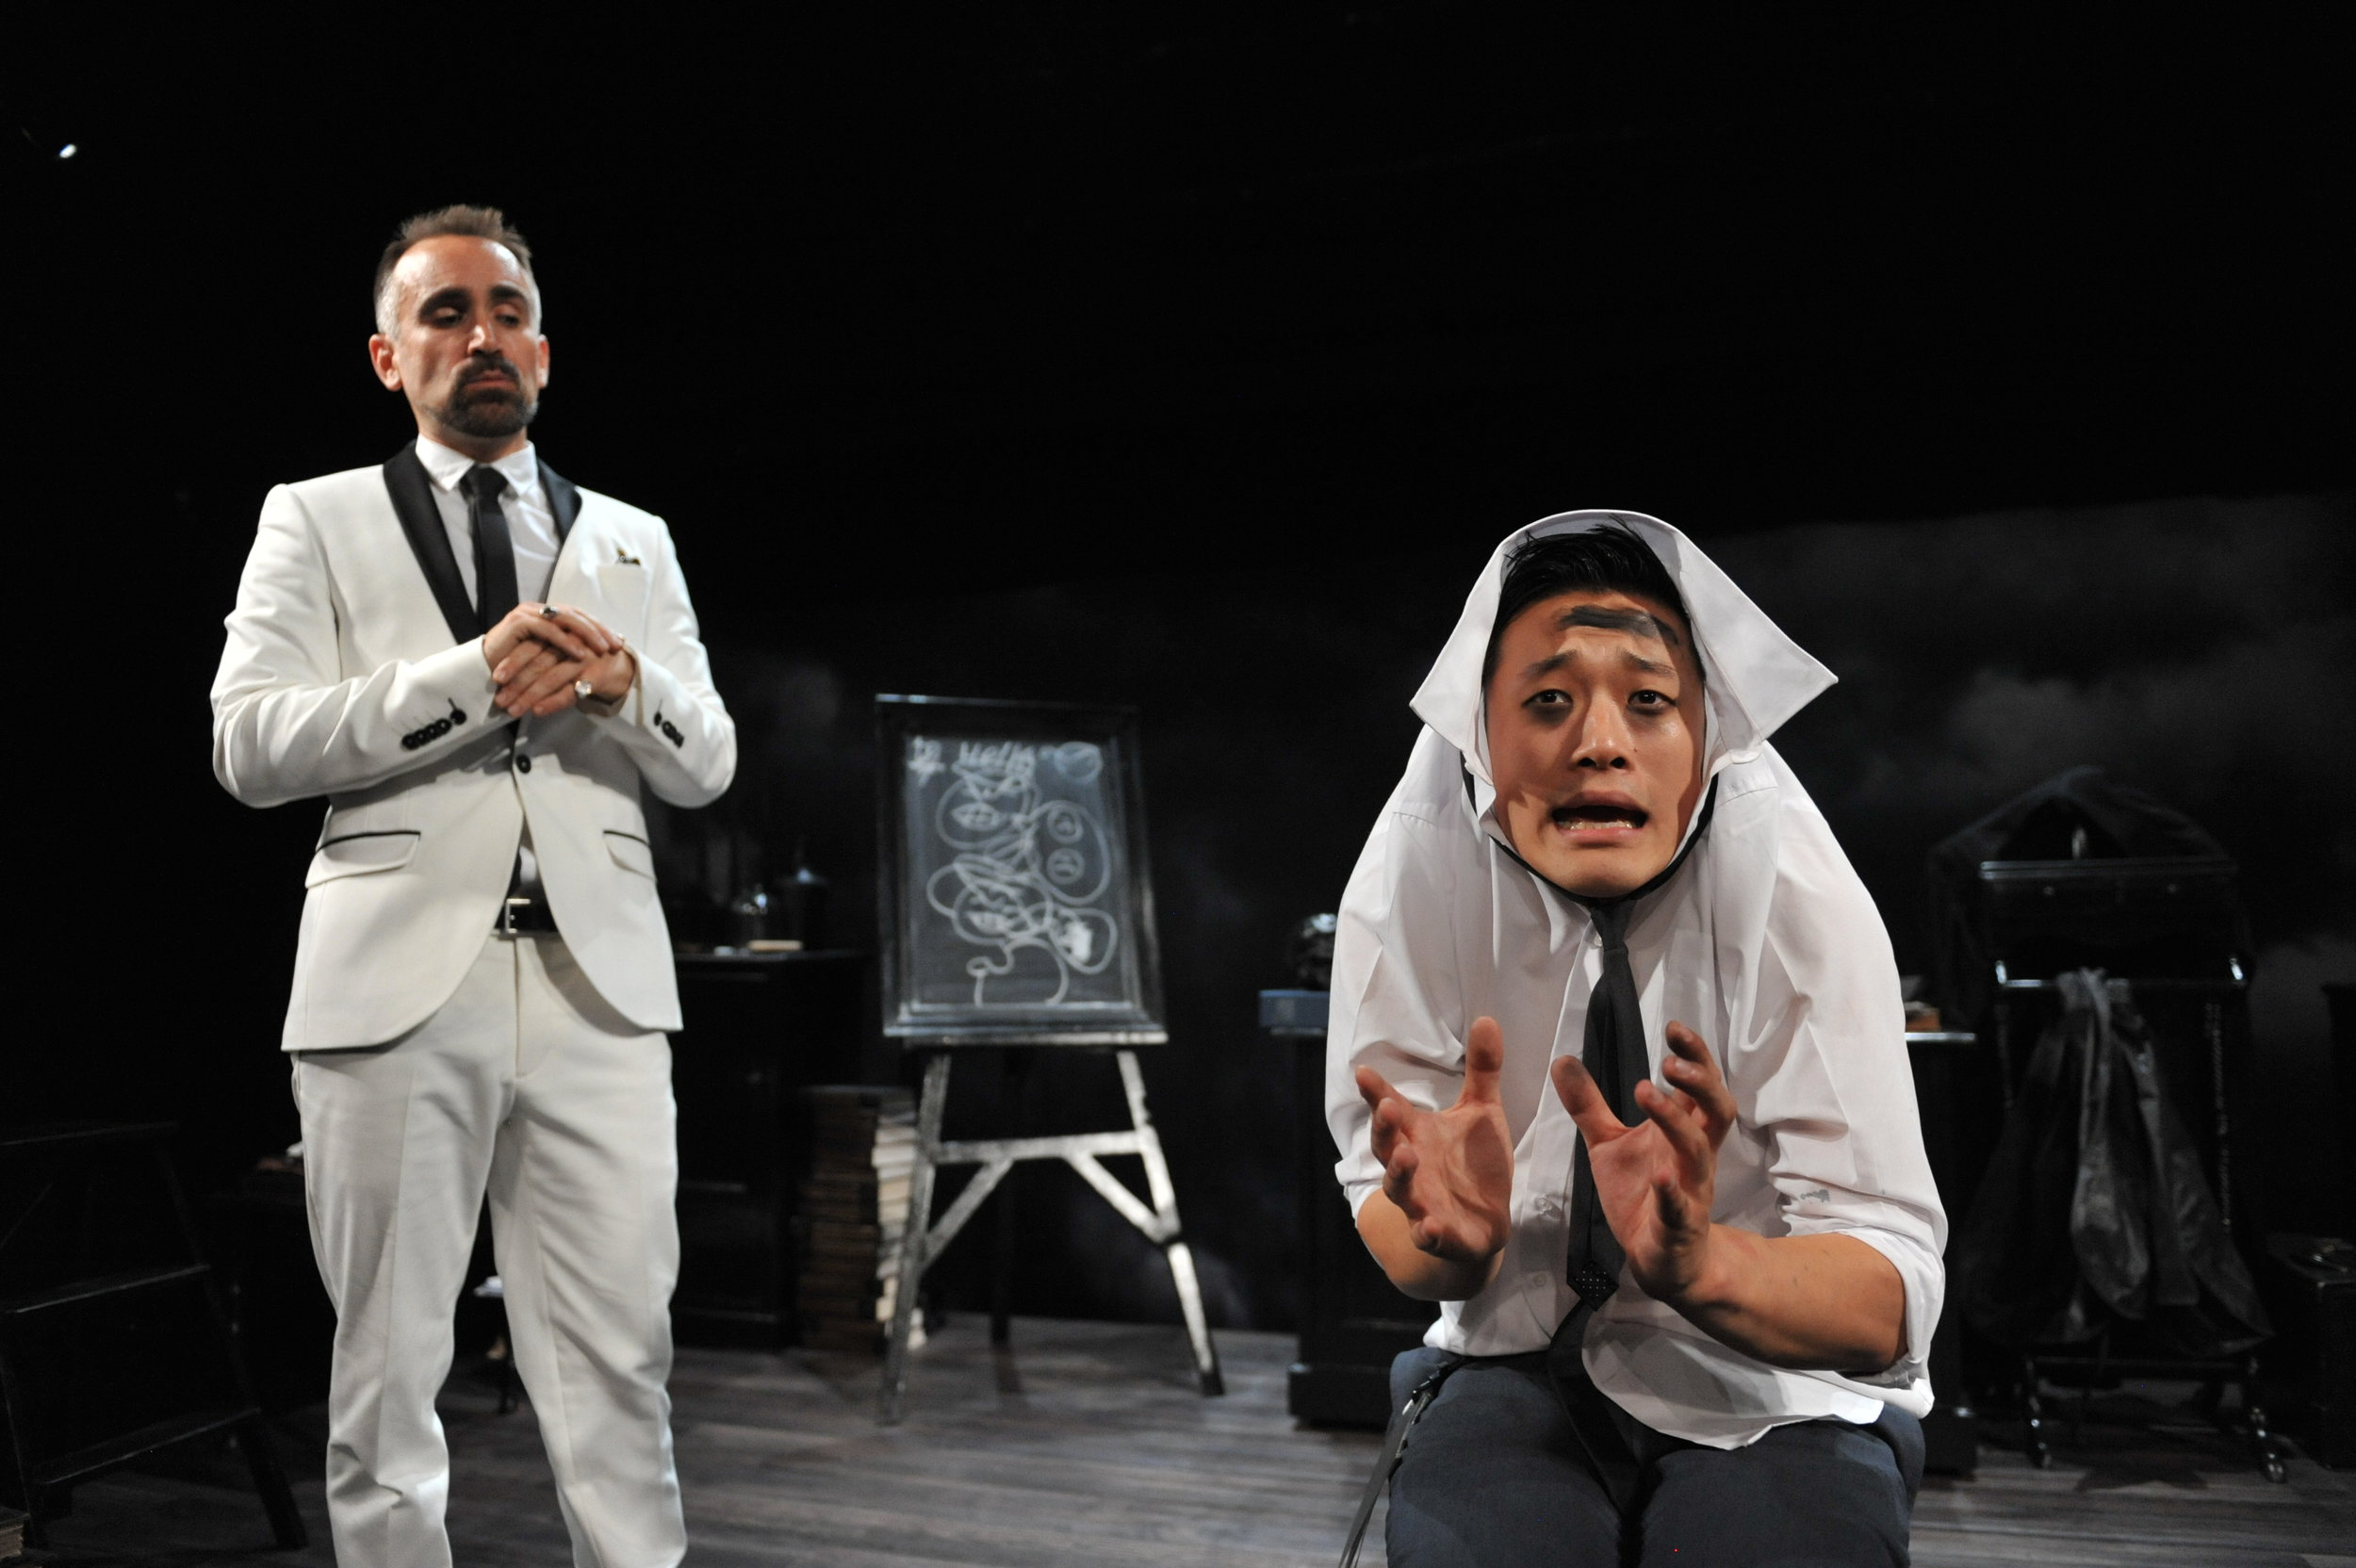 Yannick Lawry (left)  as  Screwtape and  George Zhao  (right)  as his henchman,  Toadpipe